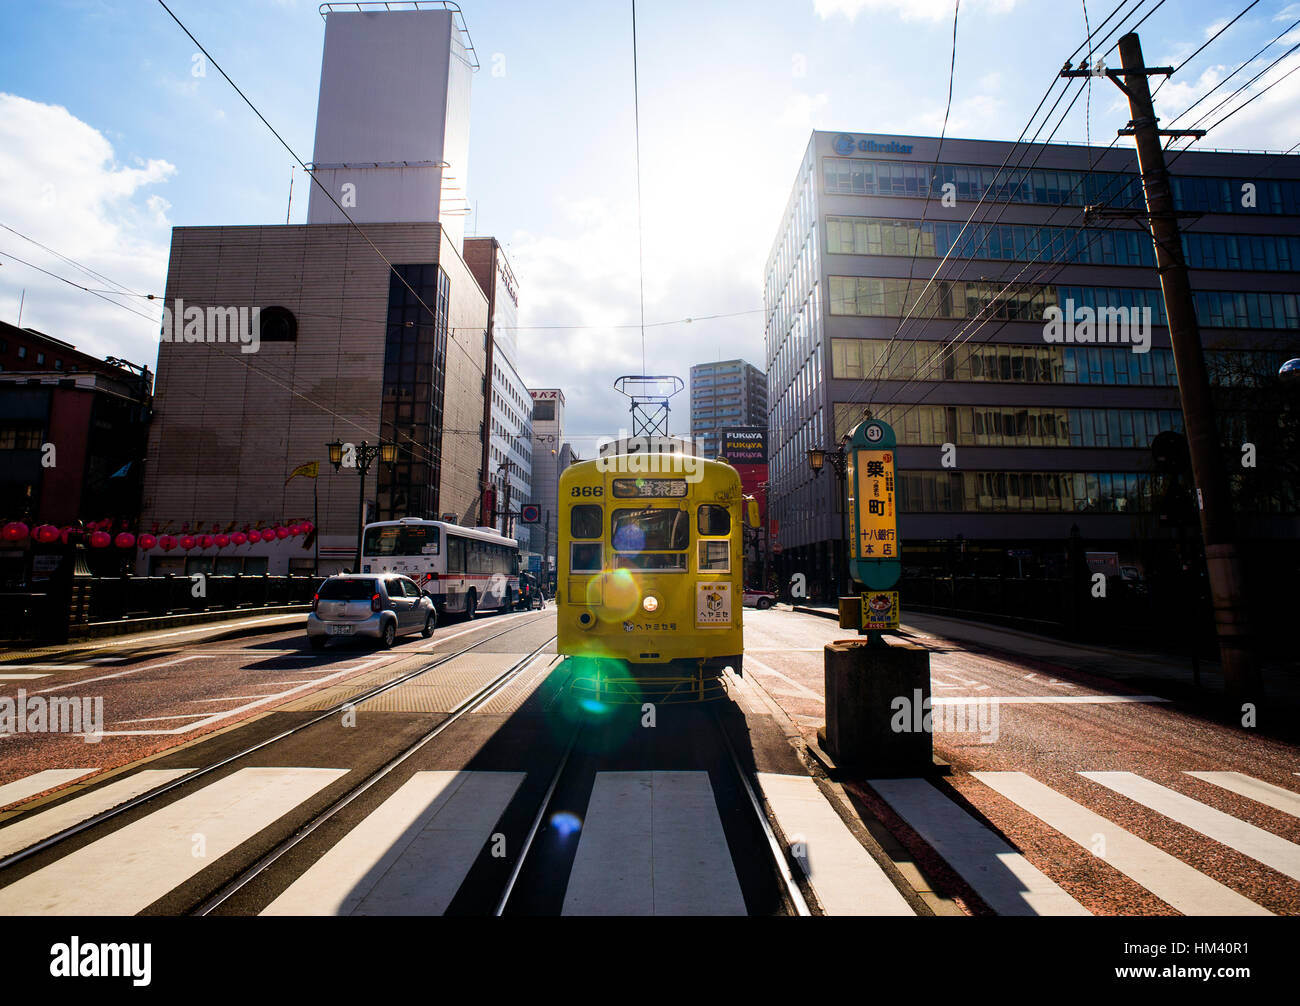 front view of a yellow vintage tram waiting at a zebra crossing in Nagasaki, Japan Stock Photo